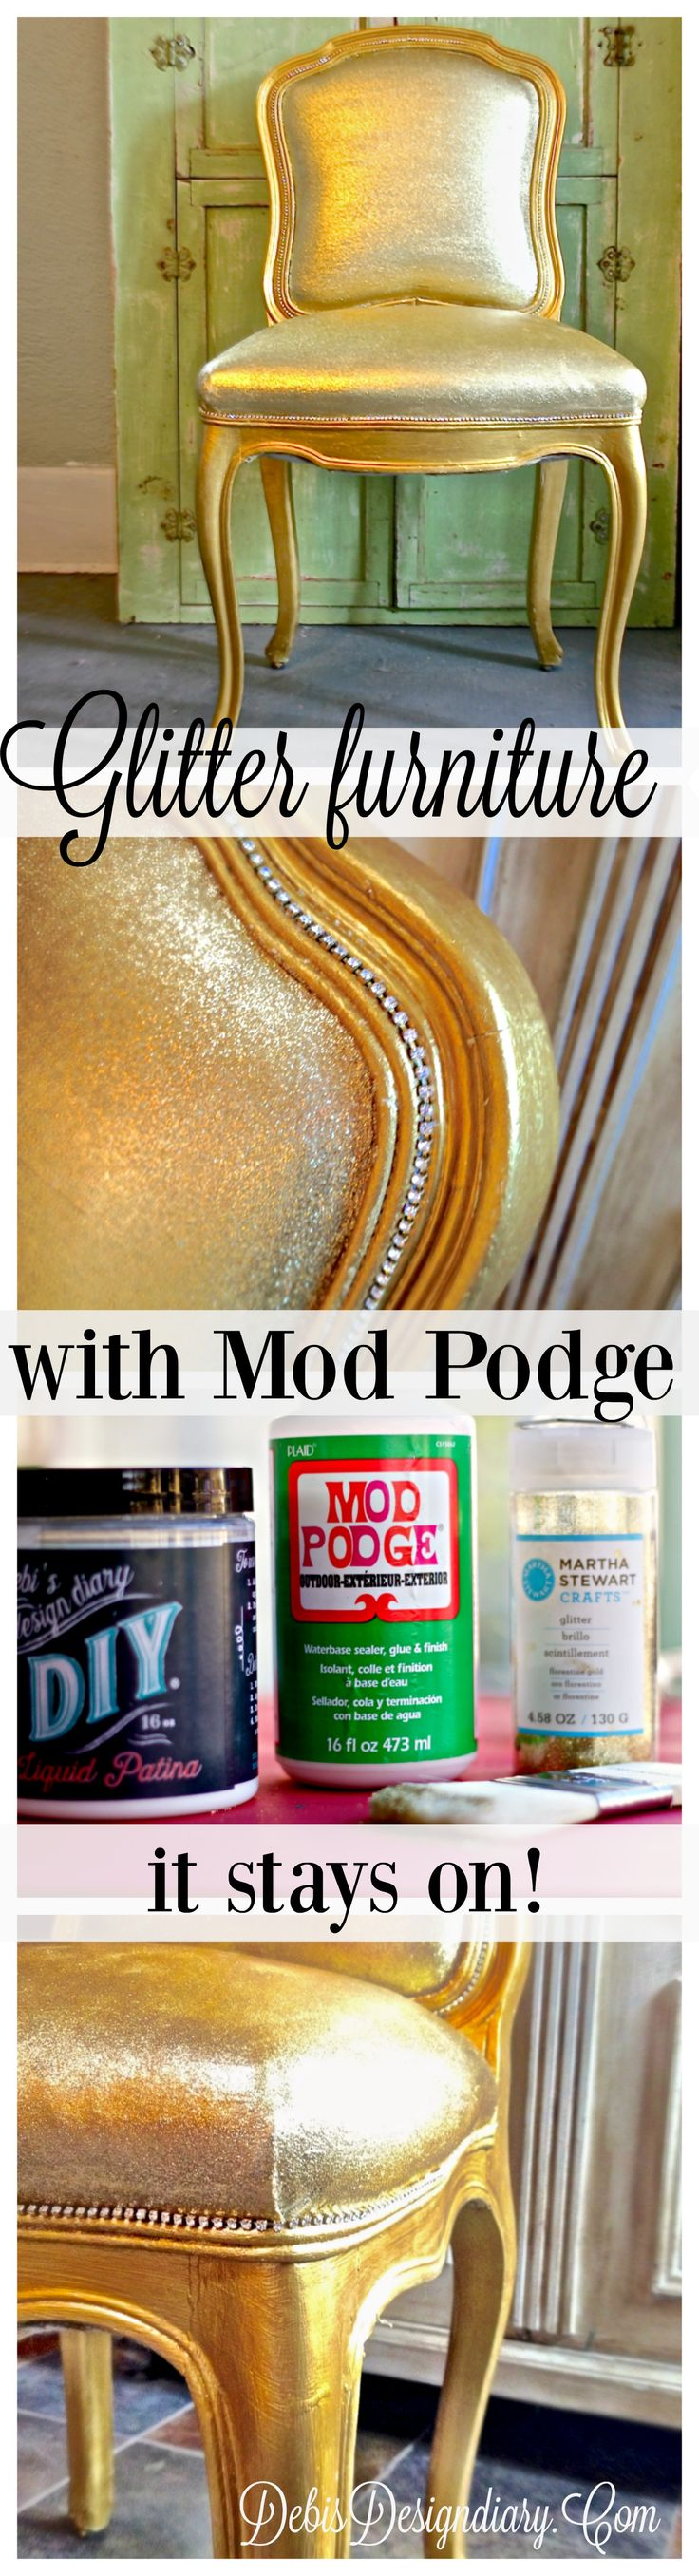 How to glitter upholstery without cracking or glitter rubbing off with Mod Podge